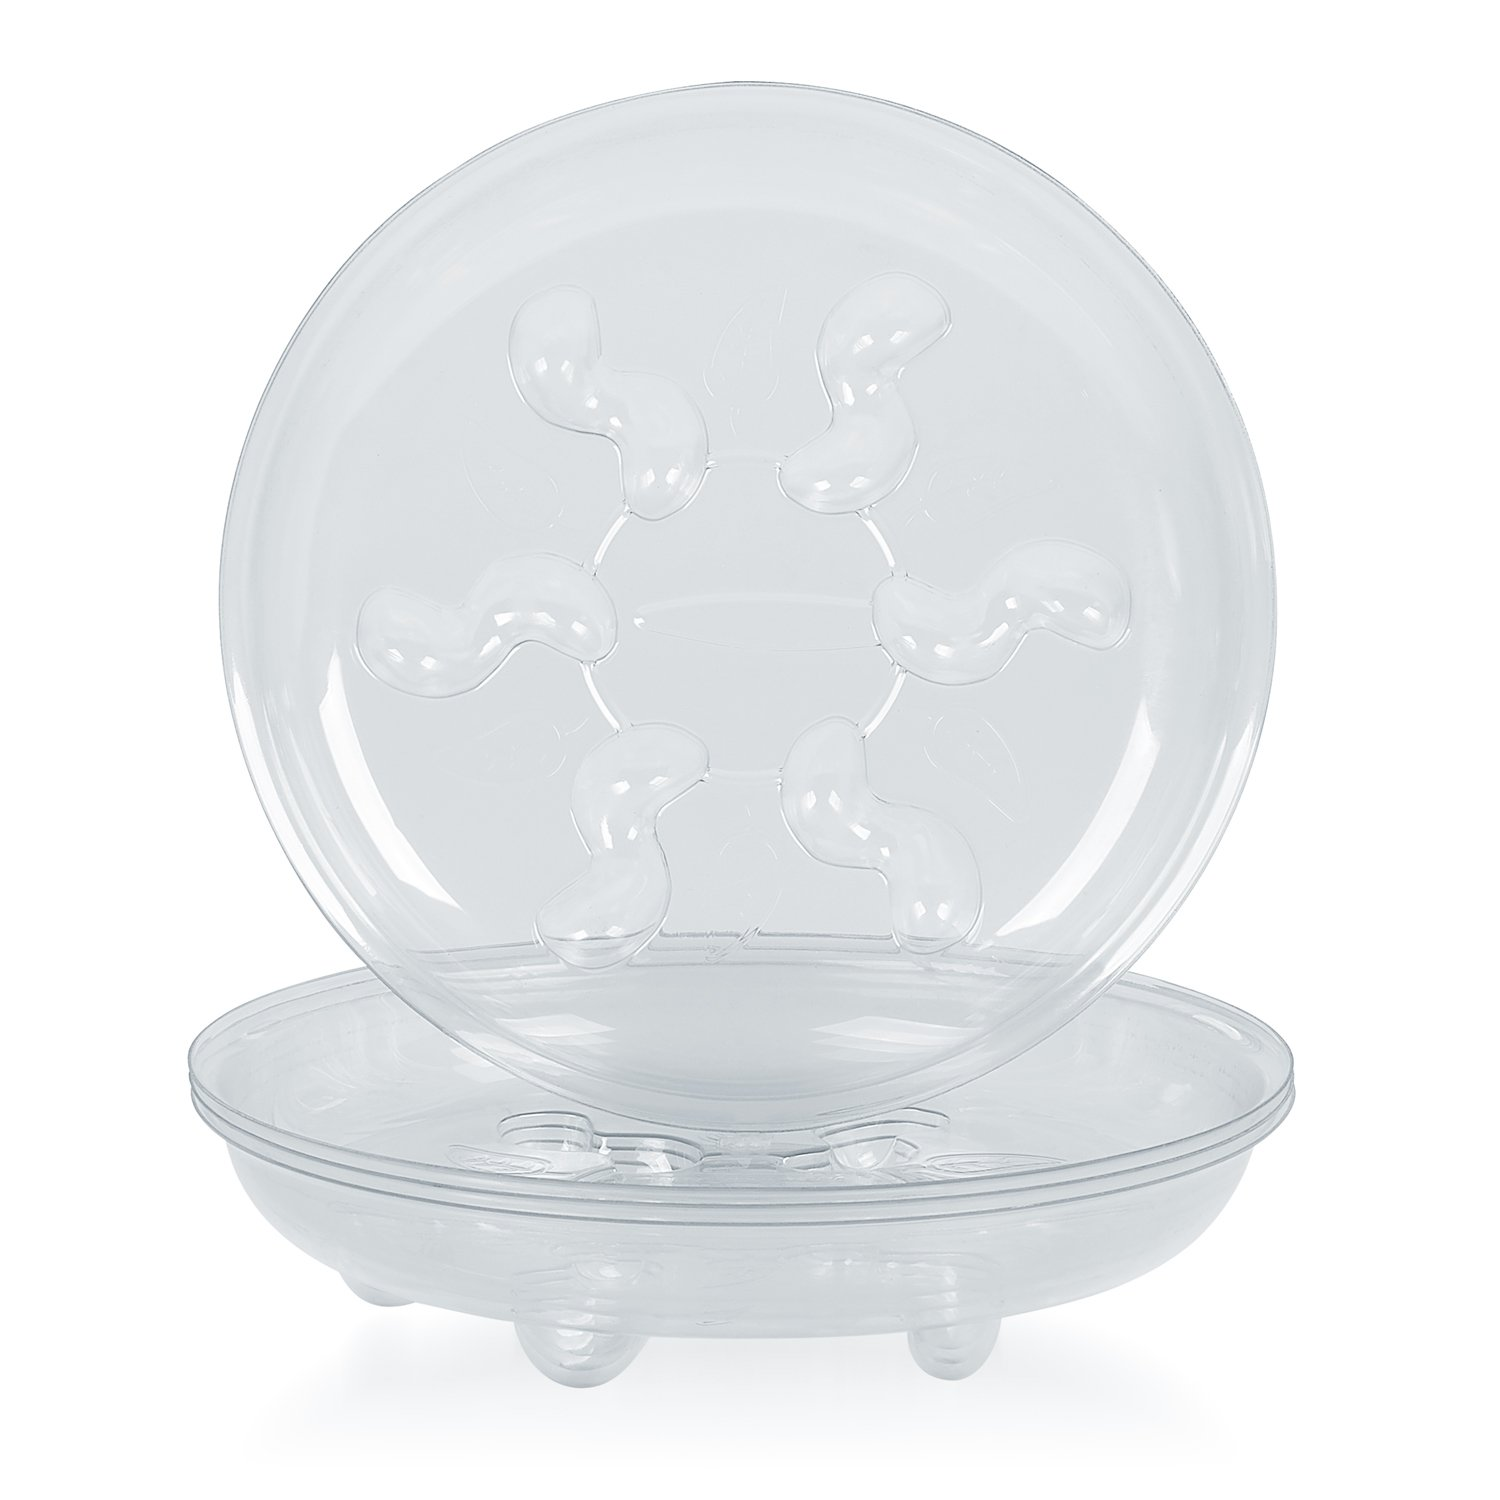 Idyllize 5 Pieces of 16 inch Clear Plastic Heavy Duty Plant Saucer Drip Trays for pots (16'') by Idyllize